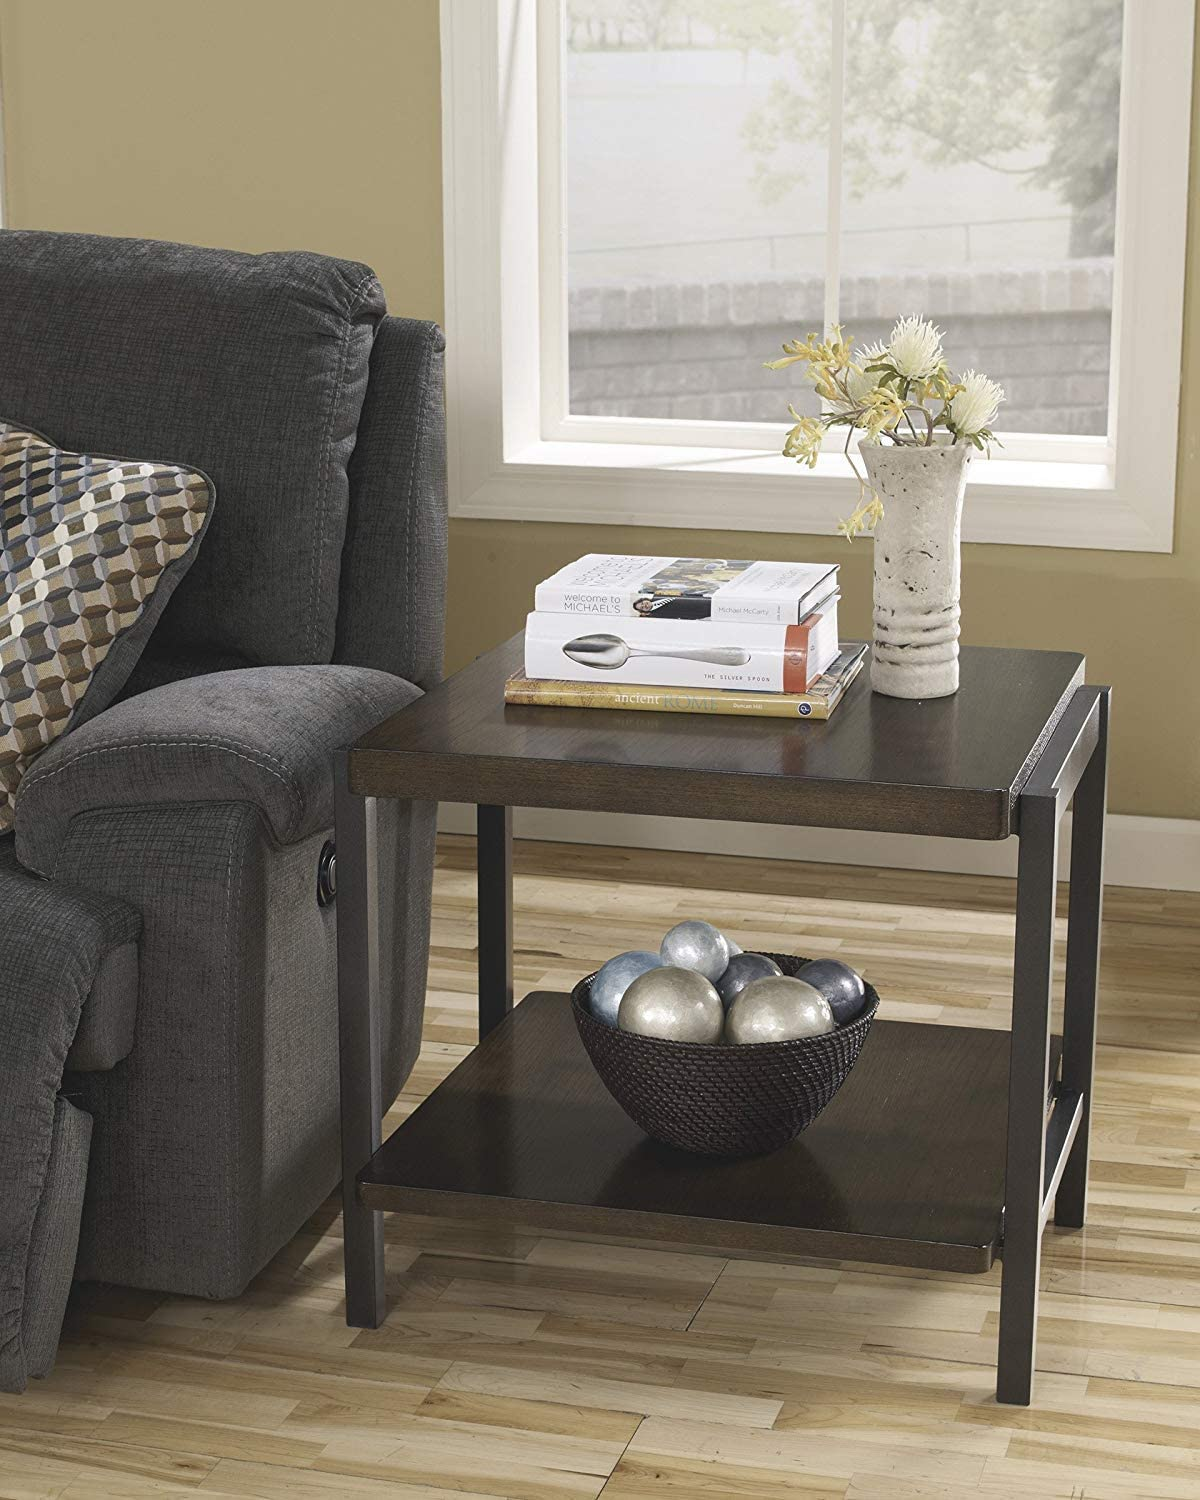 GTU Furniture Espresso Coffee Table w/Moving Wheels (End Table)